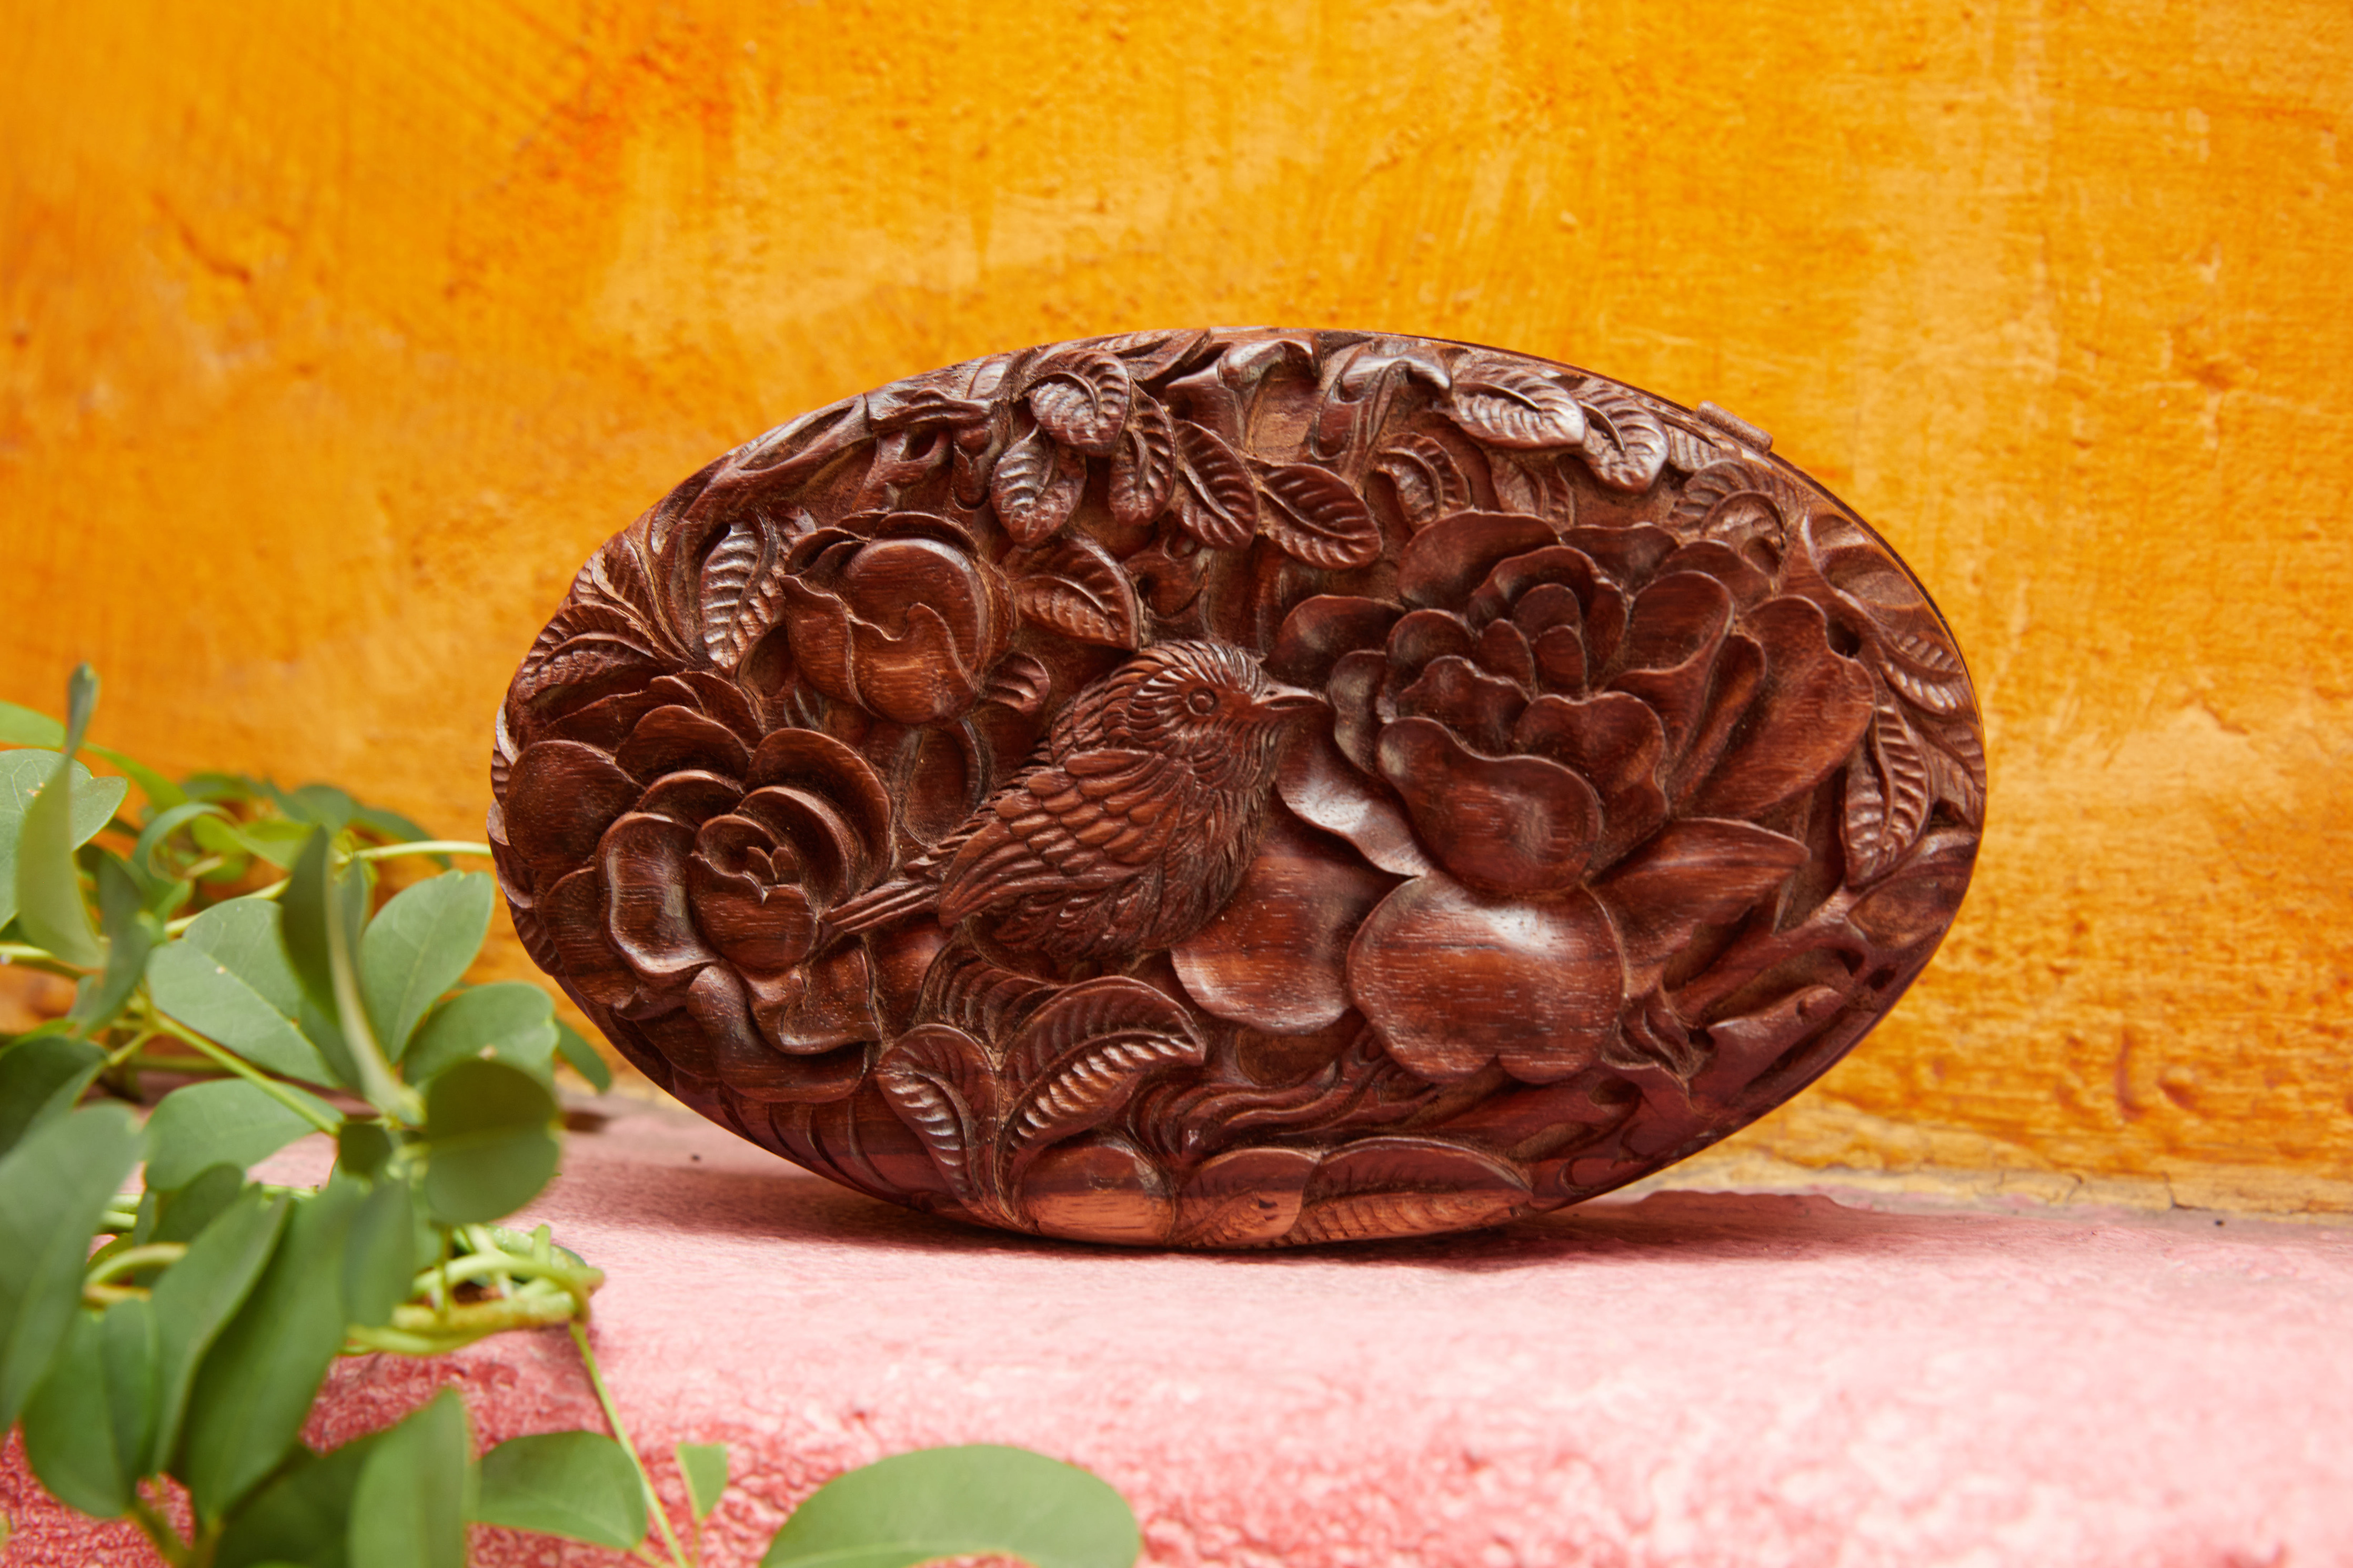 Incredible hand-carved clutches inspired by the Roses and Nightingale painting by Laurie Blum | Blumera